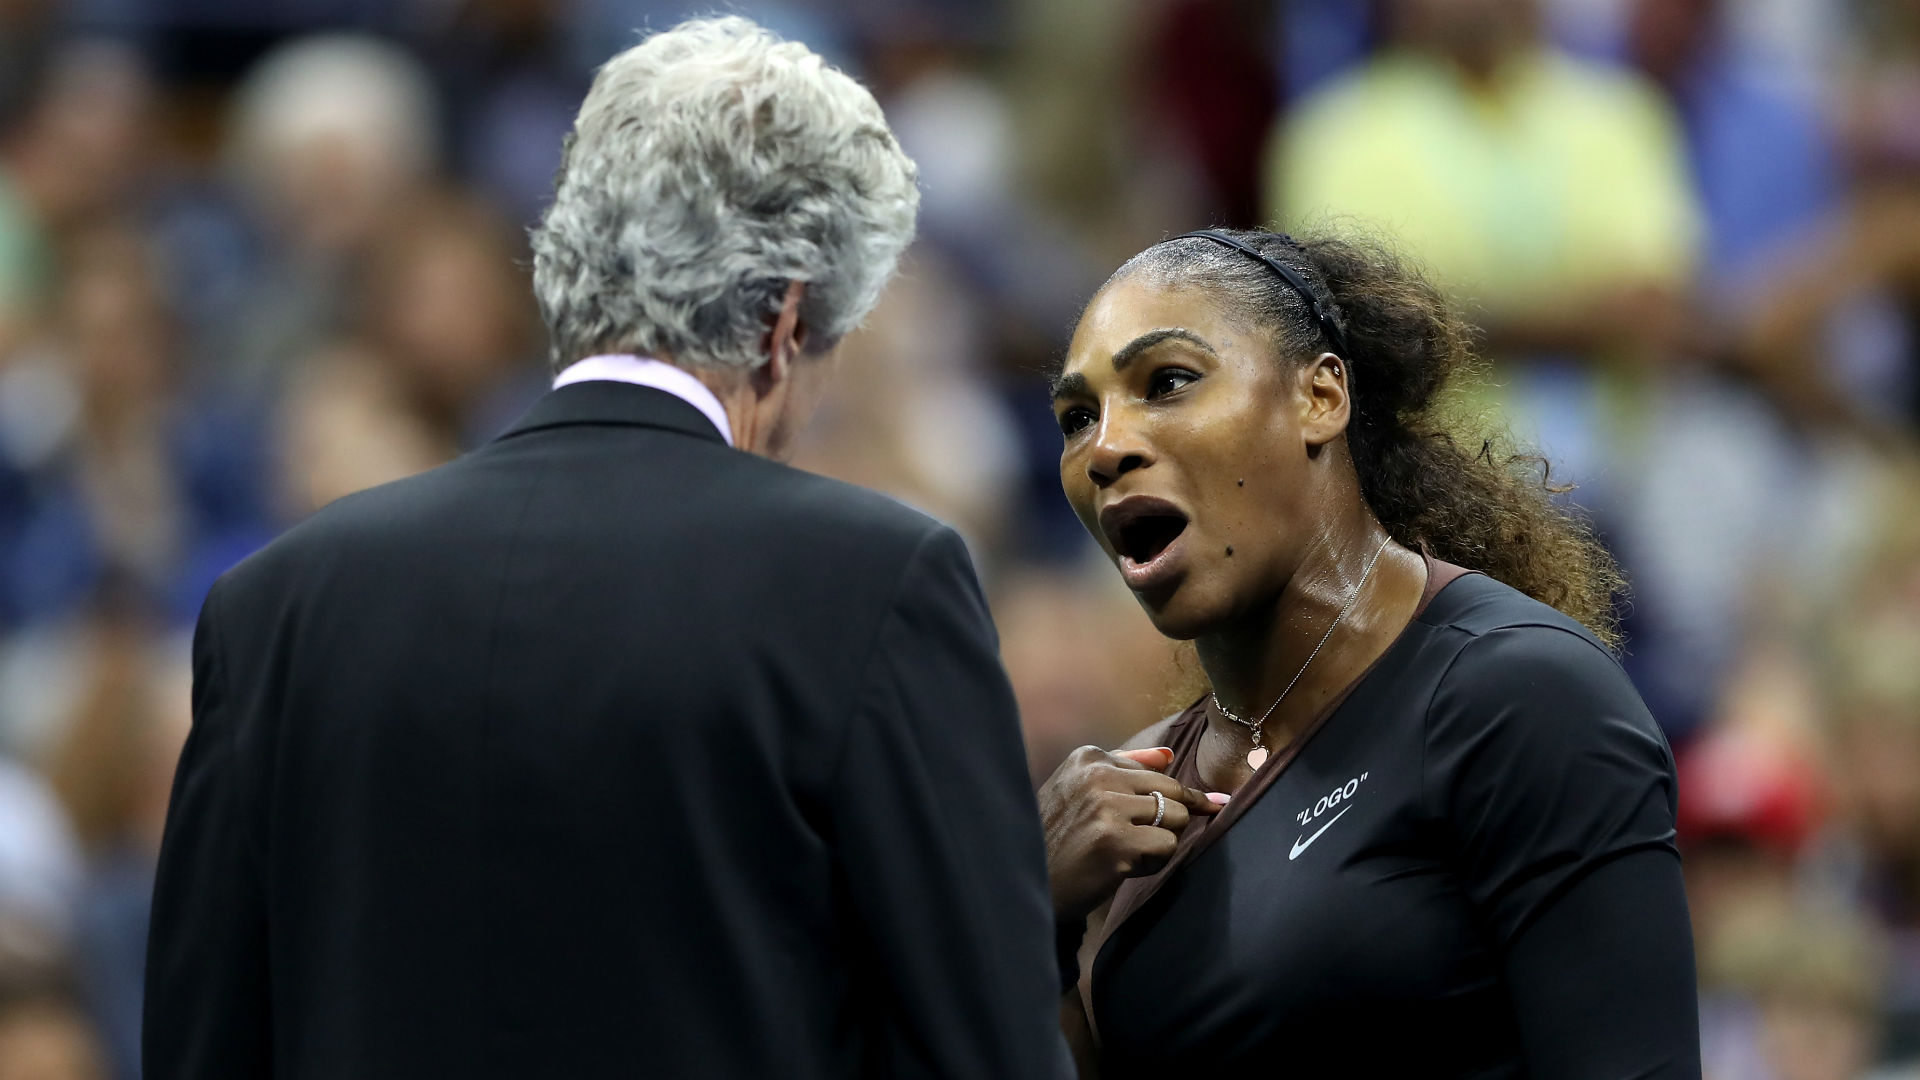 Jamie Murray: Serena Williams' sexism claims are 'a bit far-fetched'